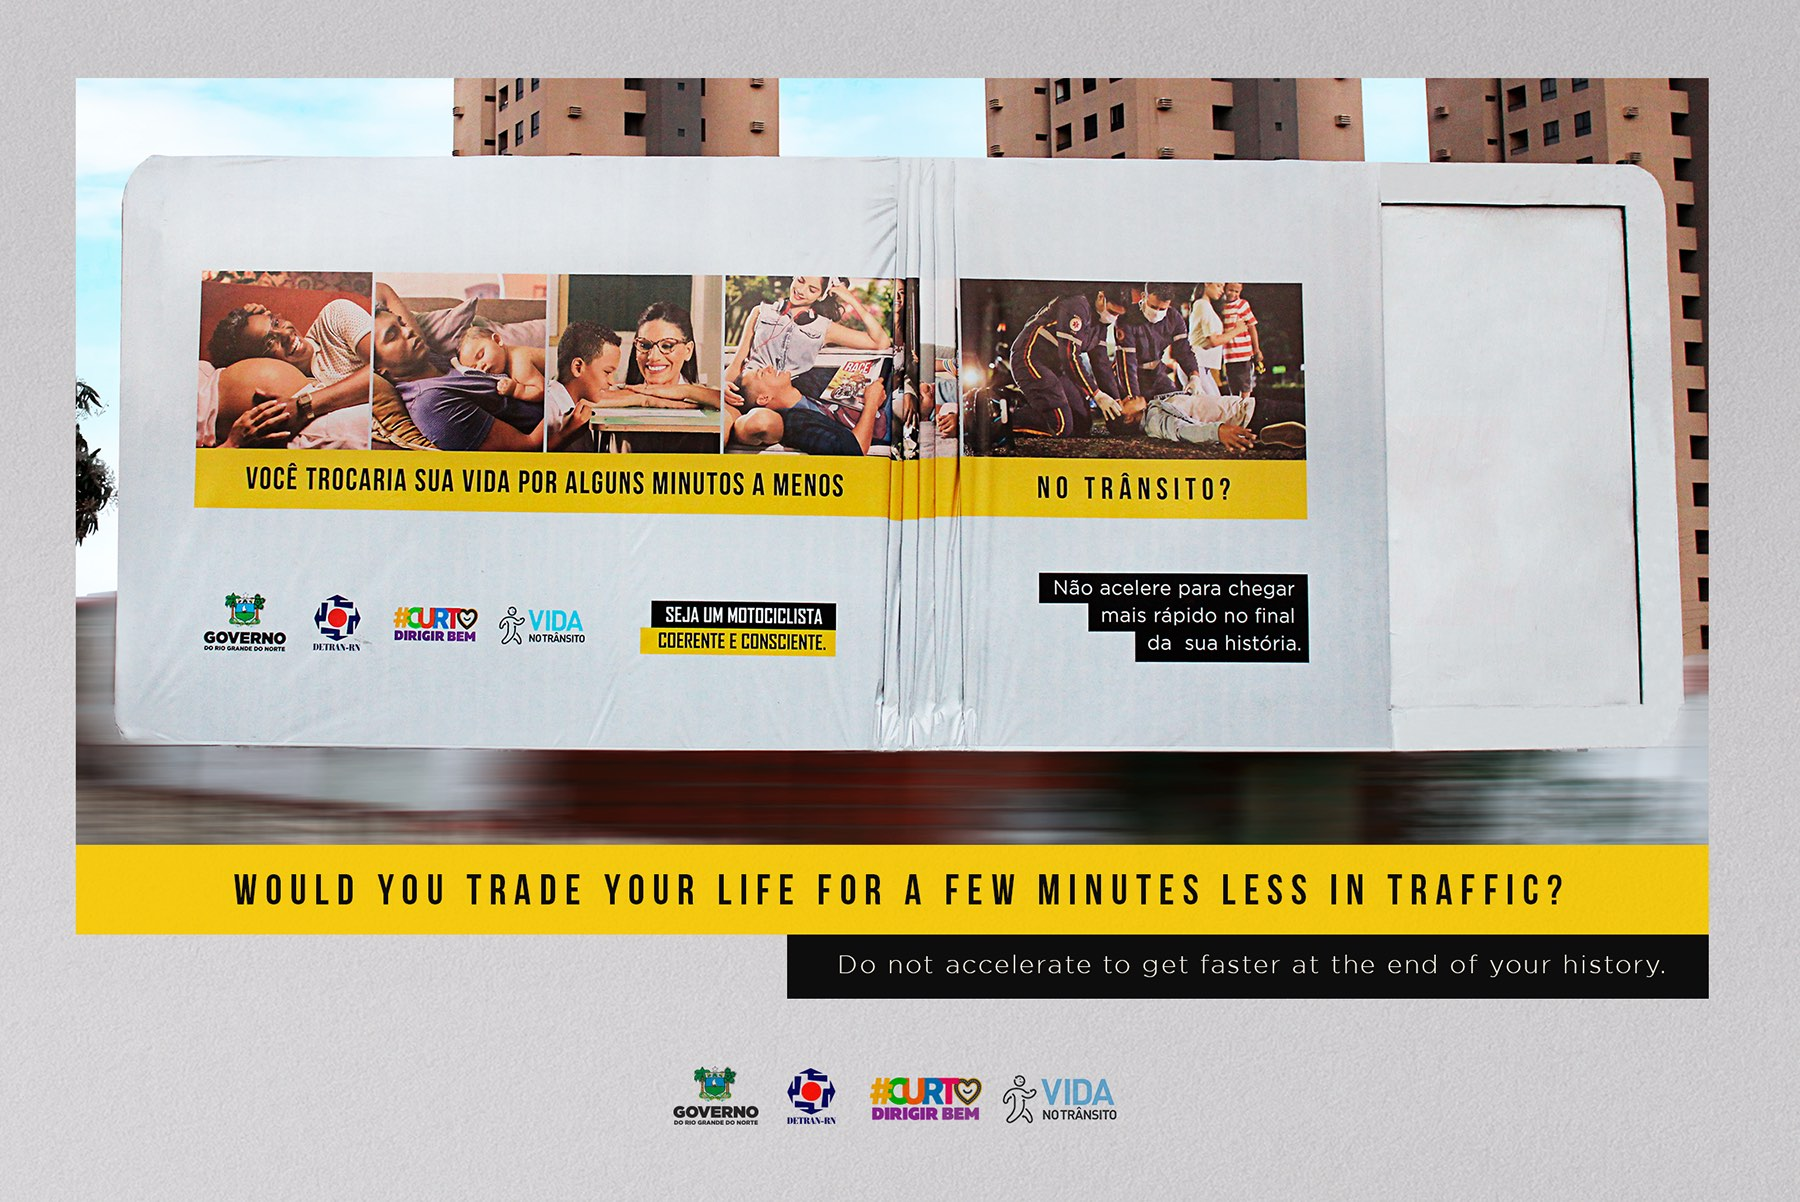 Would you trade your life for a few minutes less in traffic? - 'Short life' campaign by Detran-RN – Campaigns of the World